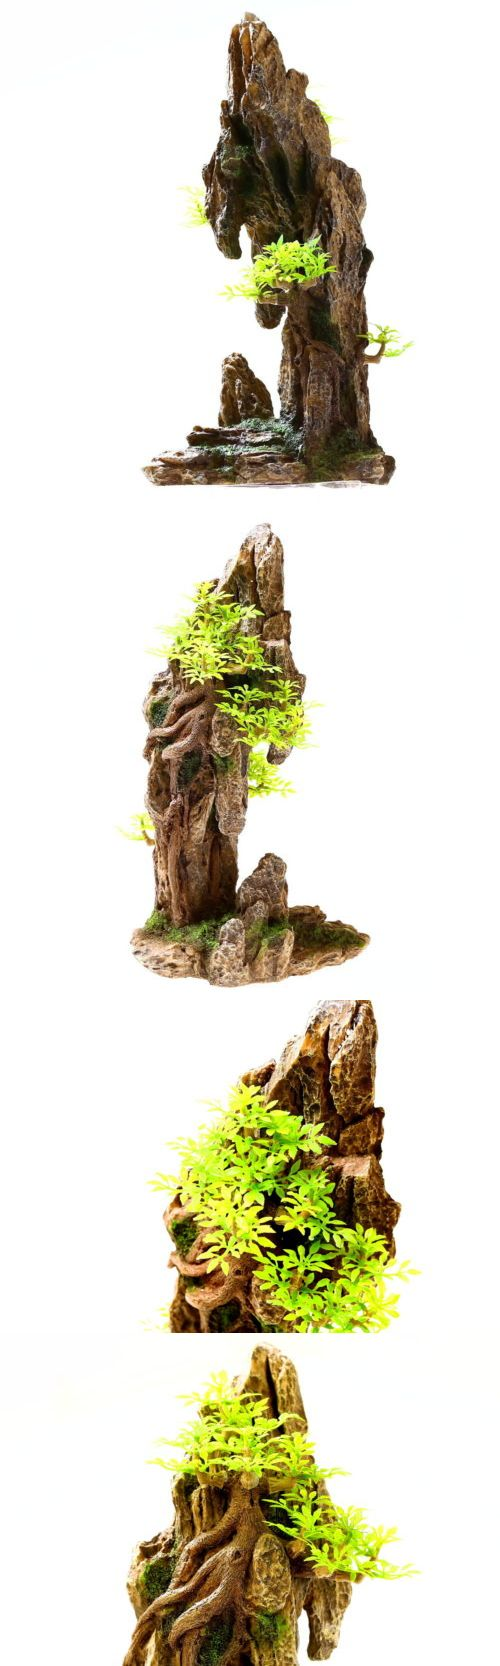 Animals Fish And Aquariums: Mountain View 13.8 H Aquarium Ornament Decoration - Fish Tank Tree Cave Resin -> BUY IT NOW ONLY: $37.89 on eBay!